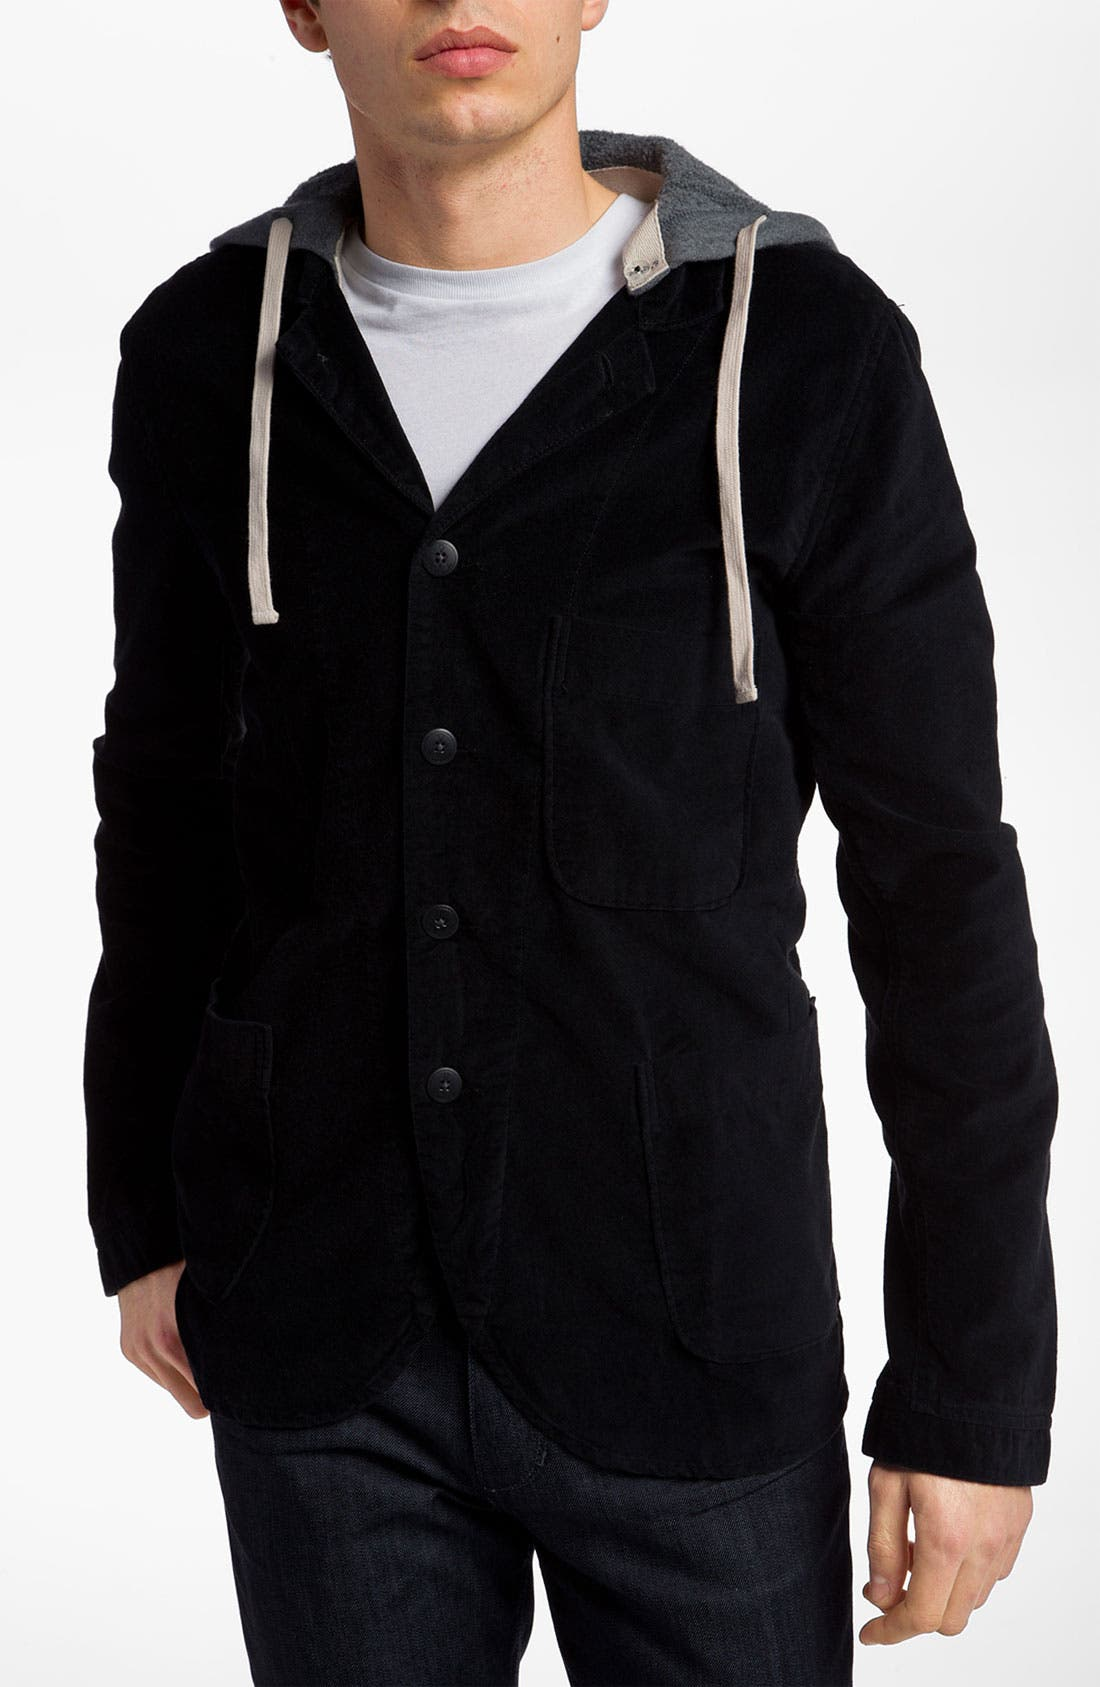 Alternate Image 1 Selected - Alternative 'Bridgeport' Hooded Blazer Style Jacket